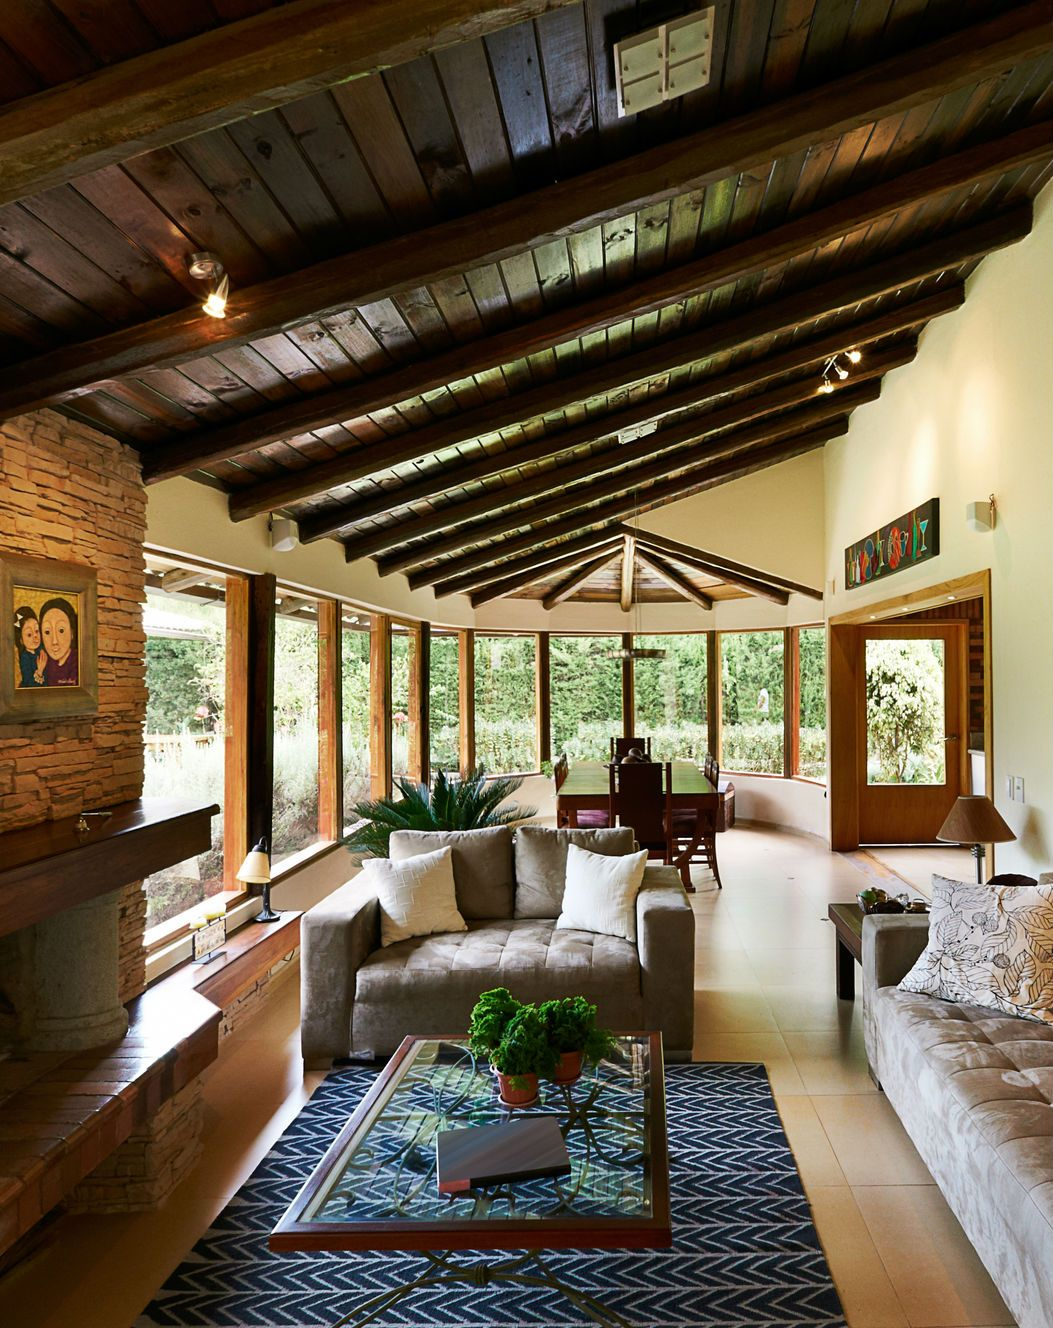 42 Ideas For Living Room Small Rustic Beams Livingroom: Dream Living Room Design In Rustic Style With Exposed